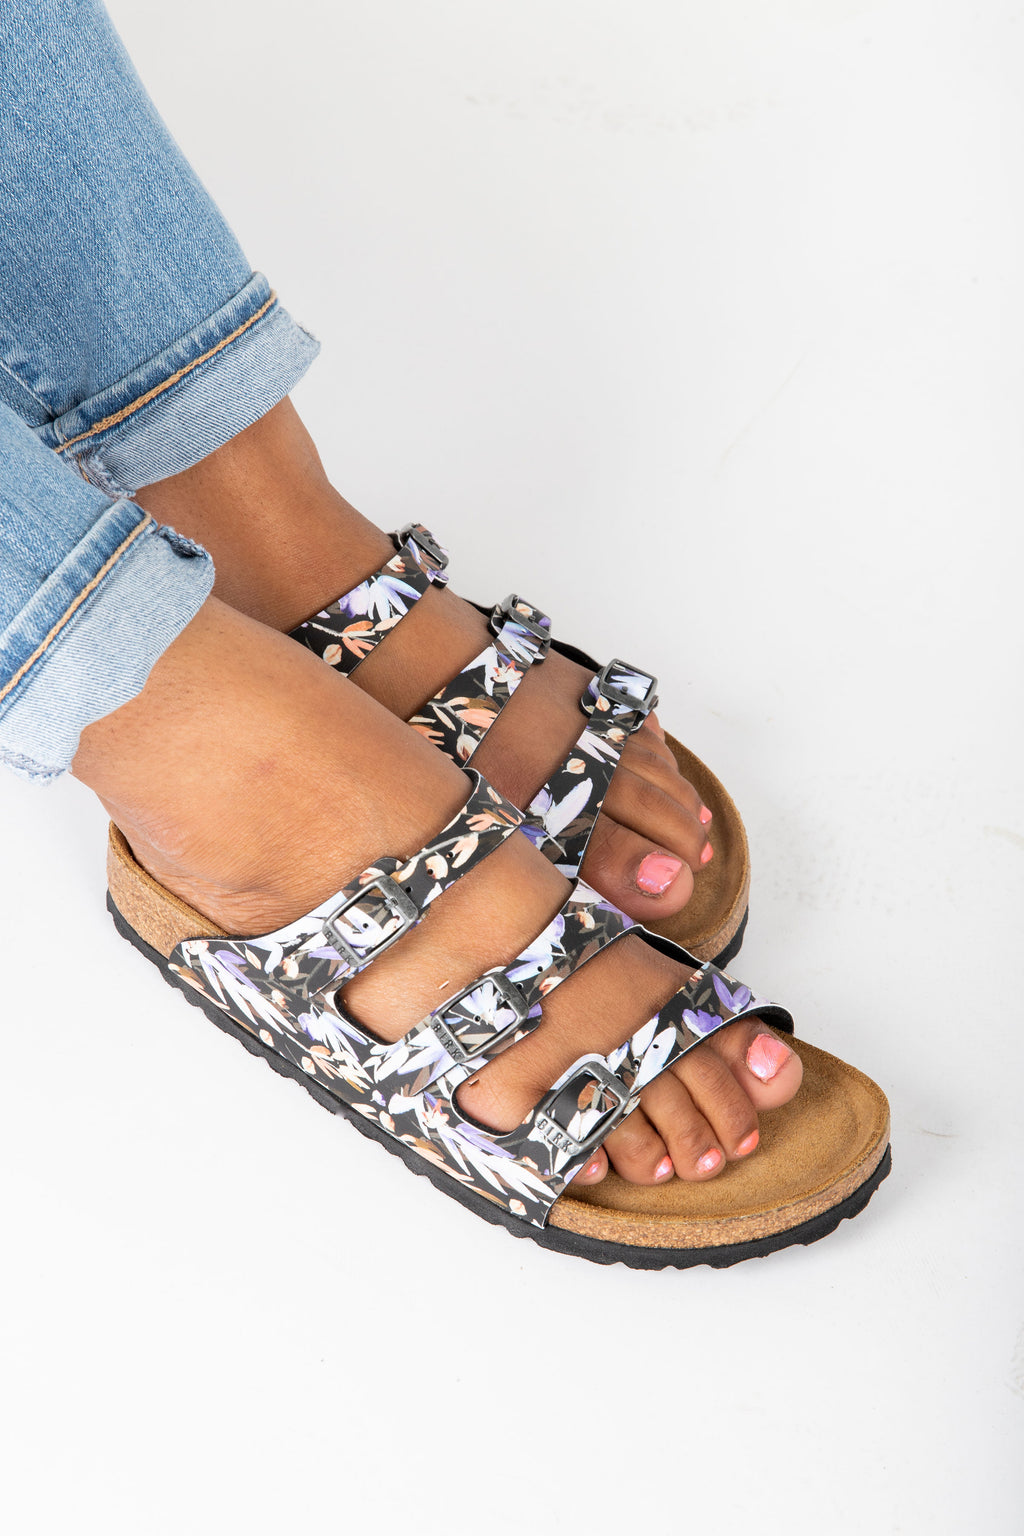 Birkenstock: Florida Fresh Soft Footbed in Floral Fades Black (Narrow Fit)